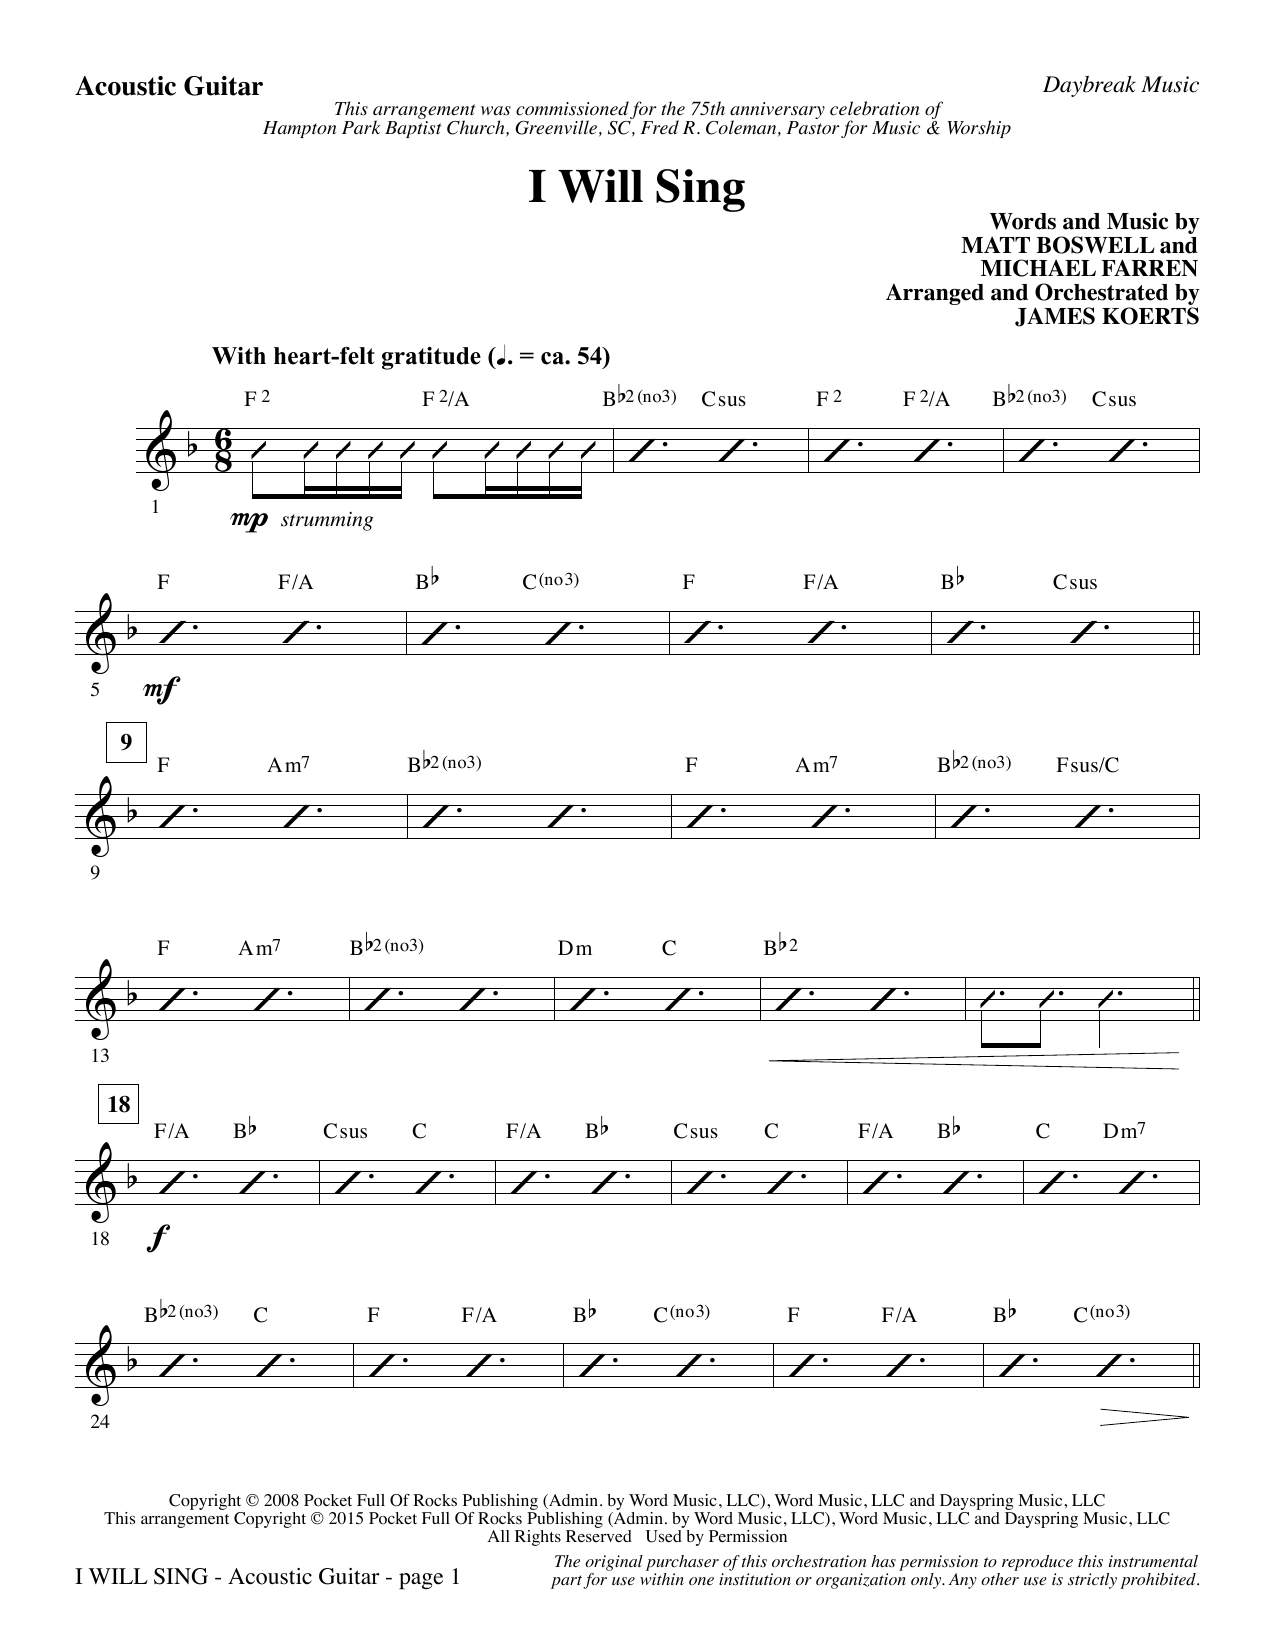 I Will Sing - Acoustic Guitar sheet music